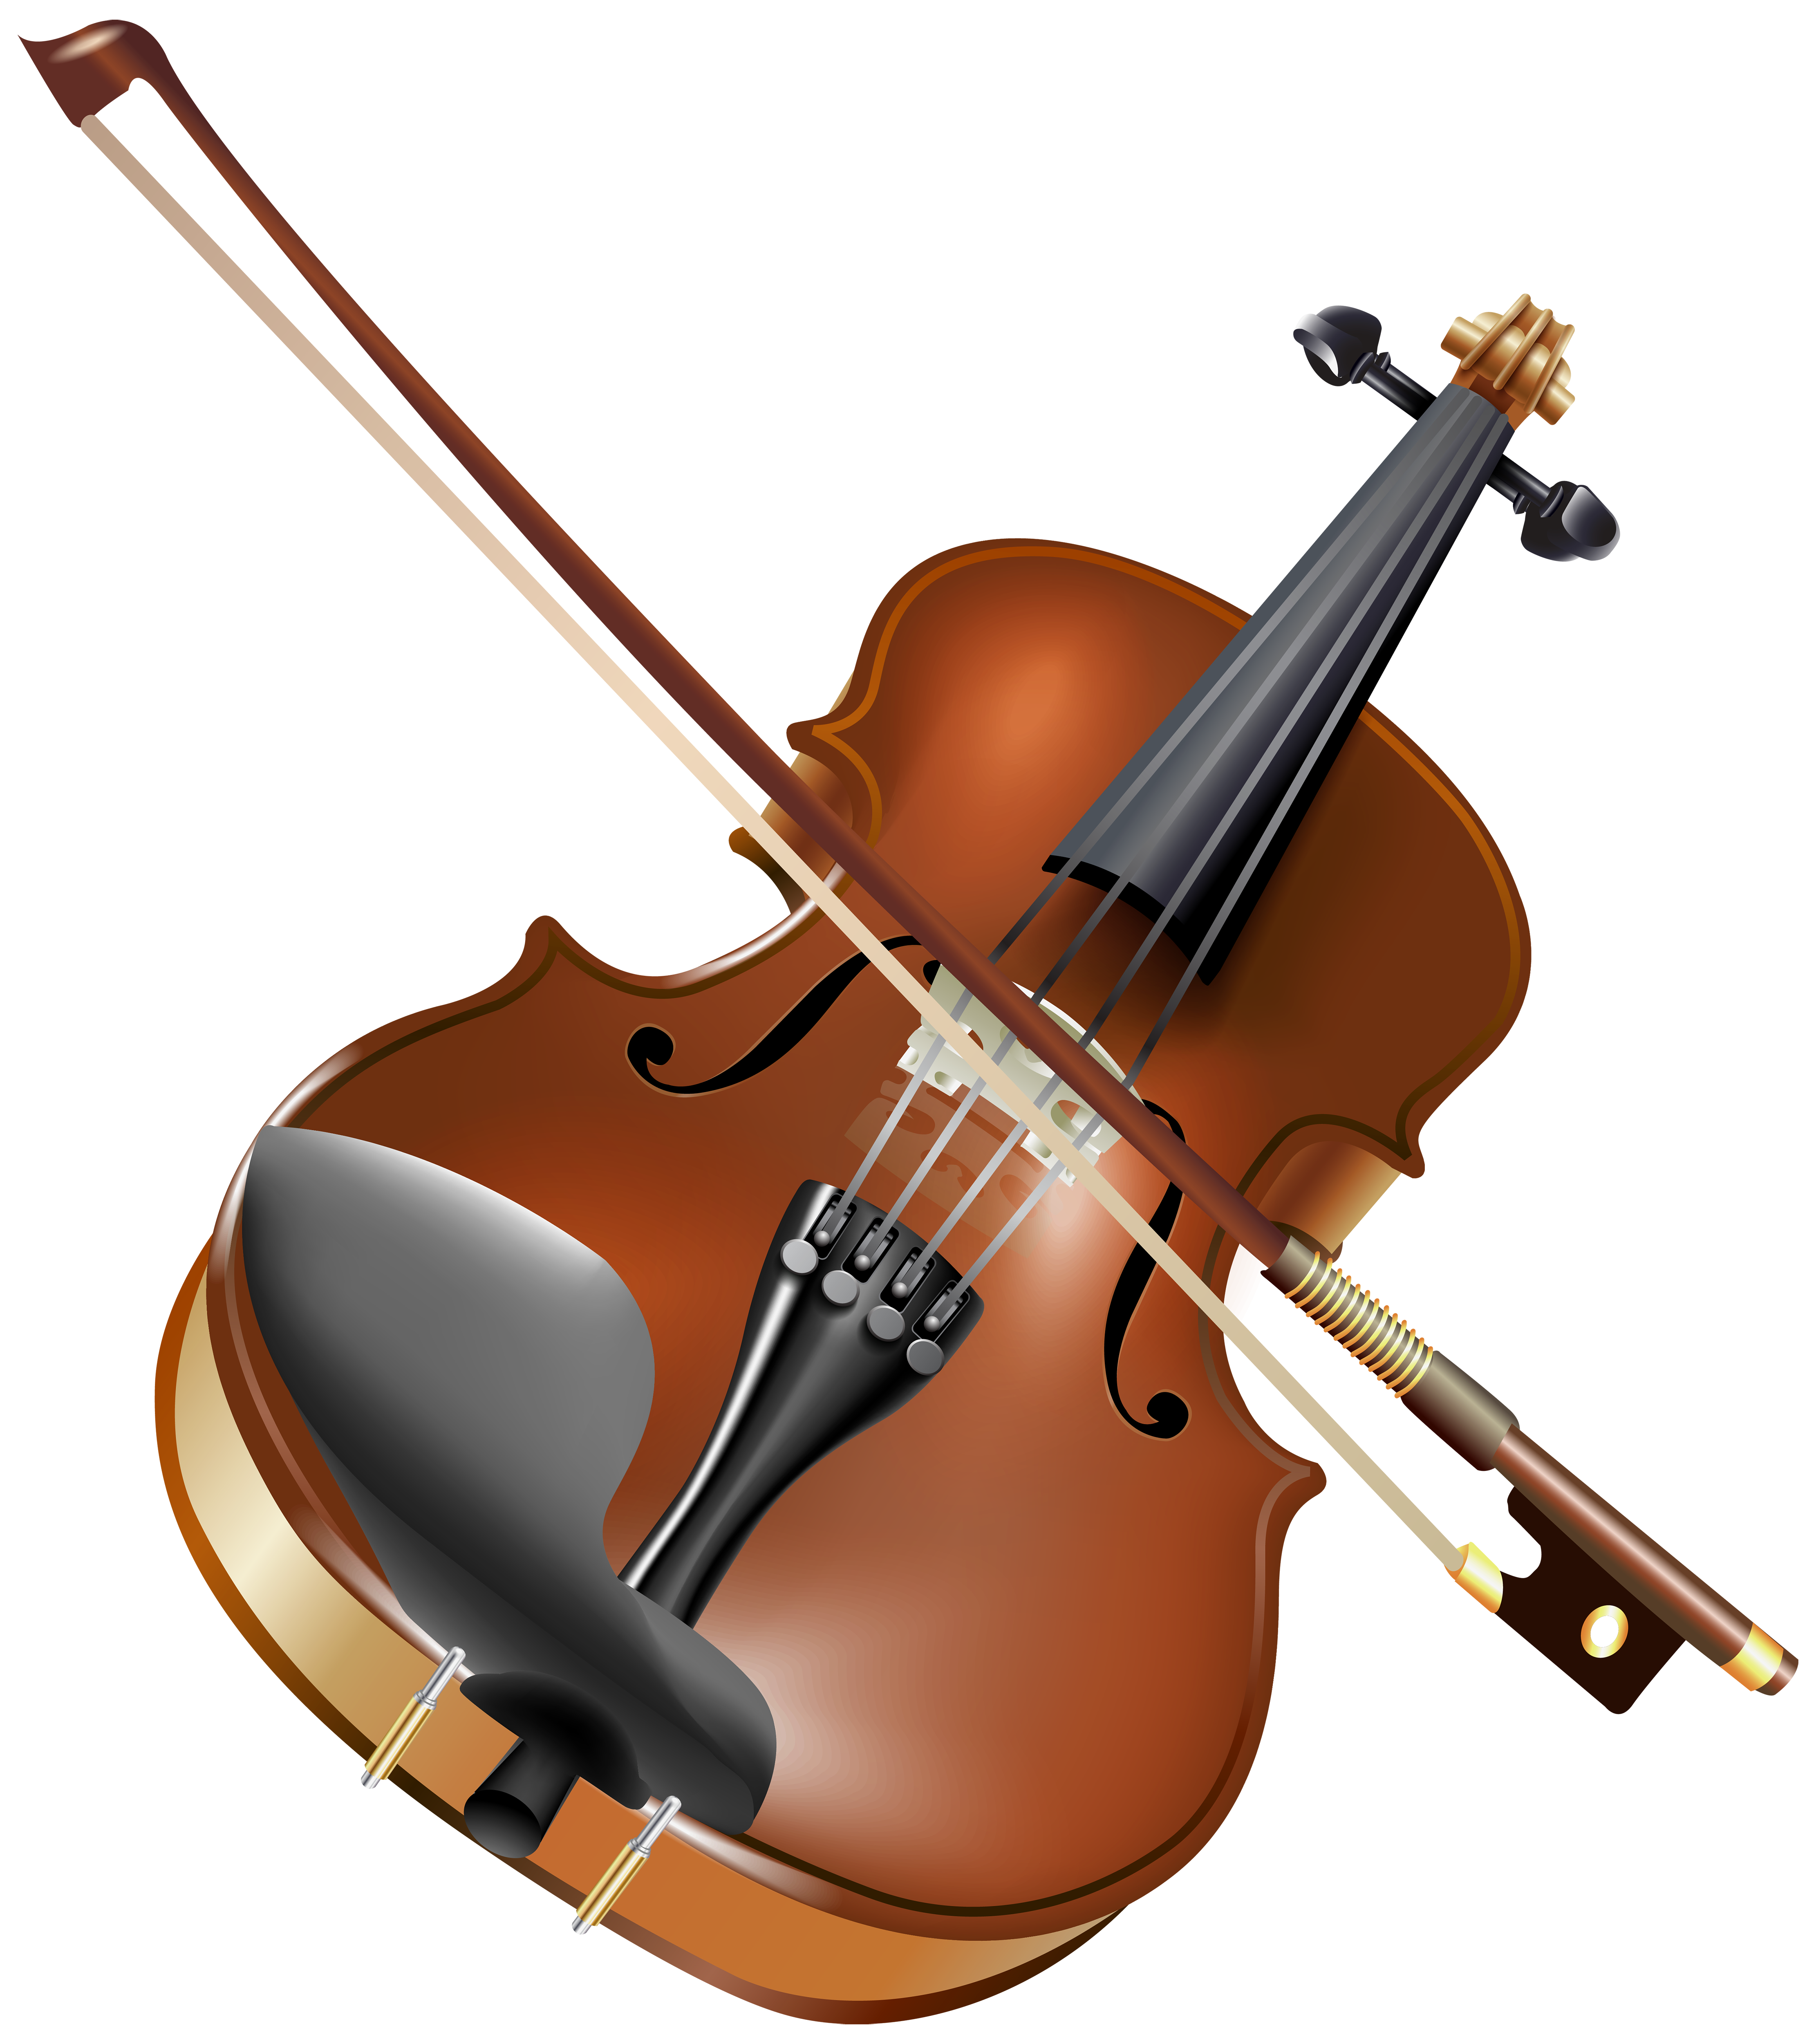 clipart freeuse download Cello clipart tool. Violin lessons kenmore elementary.